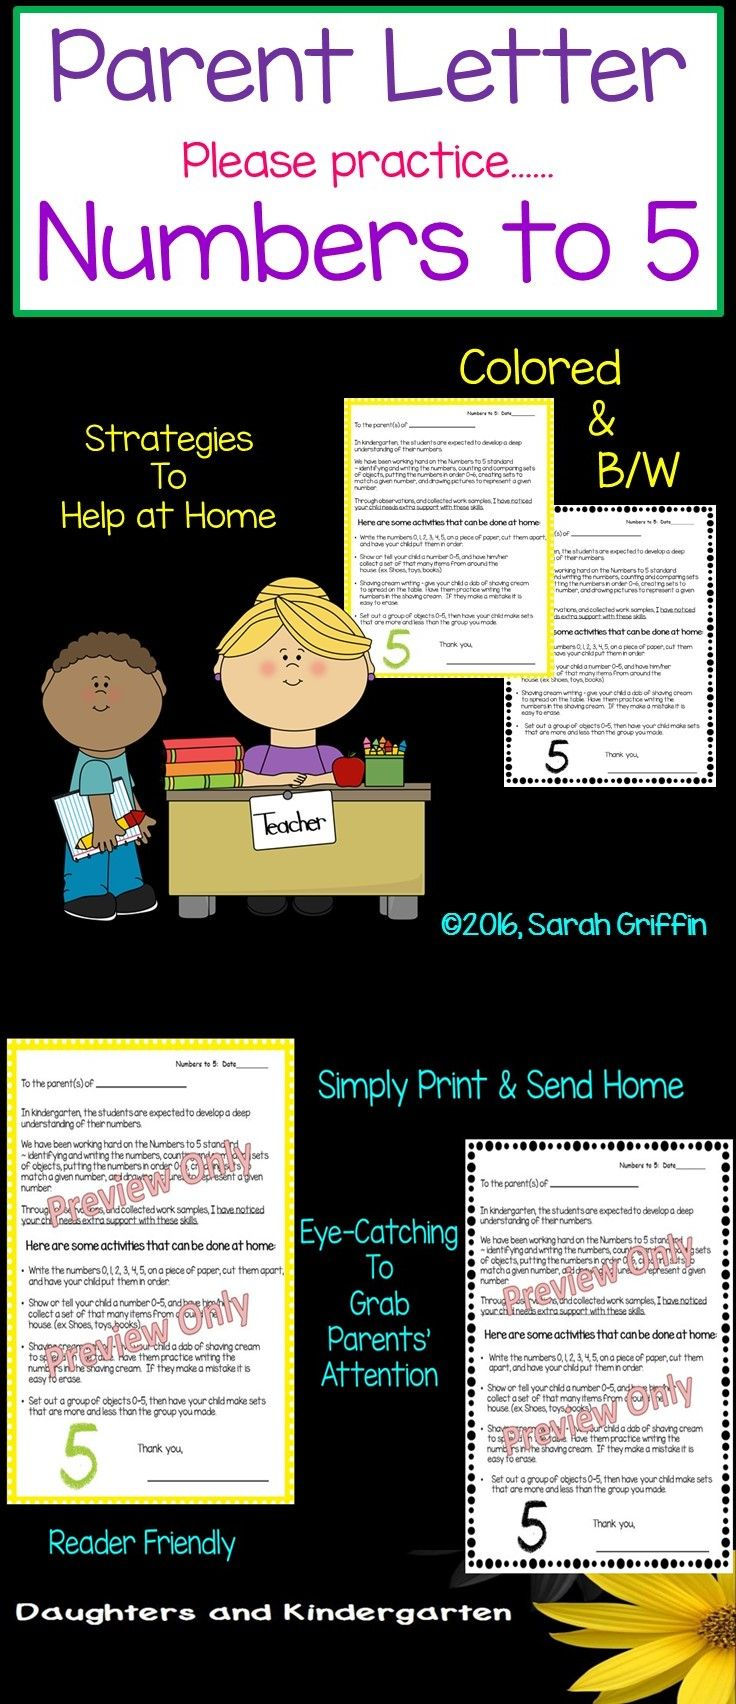 Parent Letter asking them to help their child with Numbers to 5. This math standard covers counting, ordering, comparing sets of objects, etc.  Suggestions are given for parents to help at home.  Sarah Griffin, Daughters and Kindergarten https://www.teacherspayteachers.com/Product/Parent-Letter-Practice-Numbers-to-5-940114